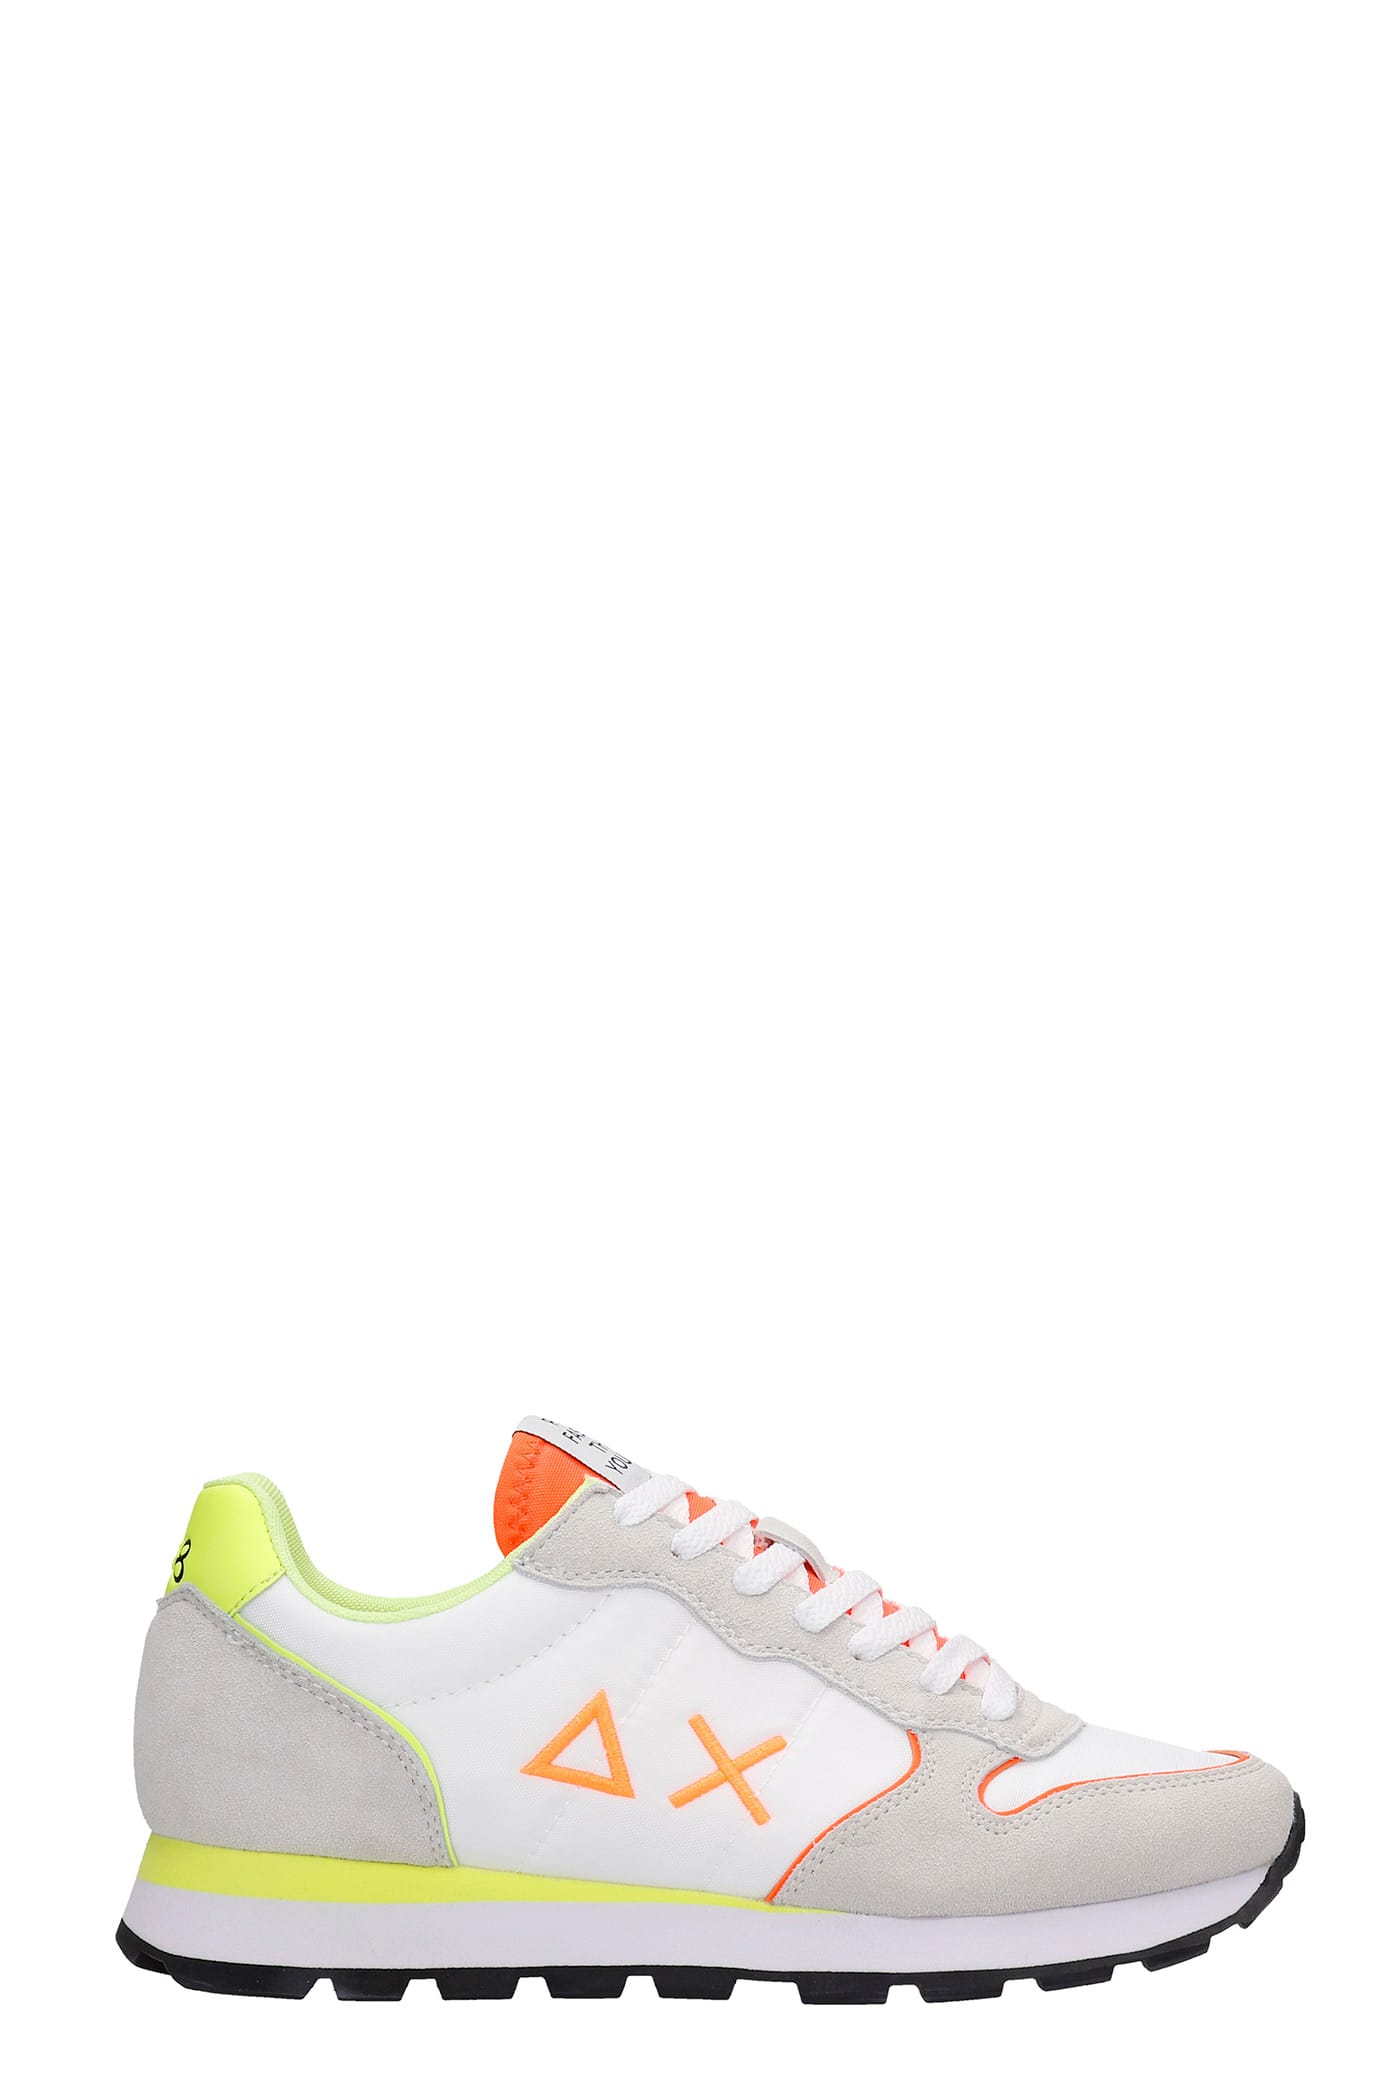 Sun 68 Suedes TOM FLUO SNEAKERS IN WHITE SUEDE AND FABRIC